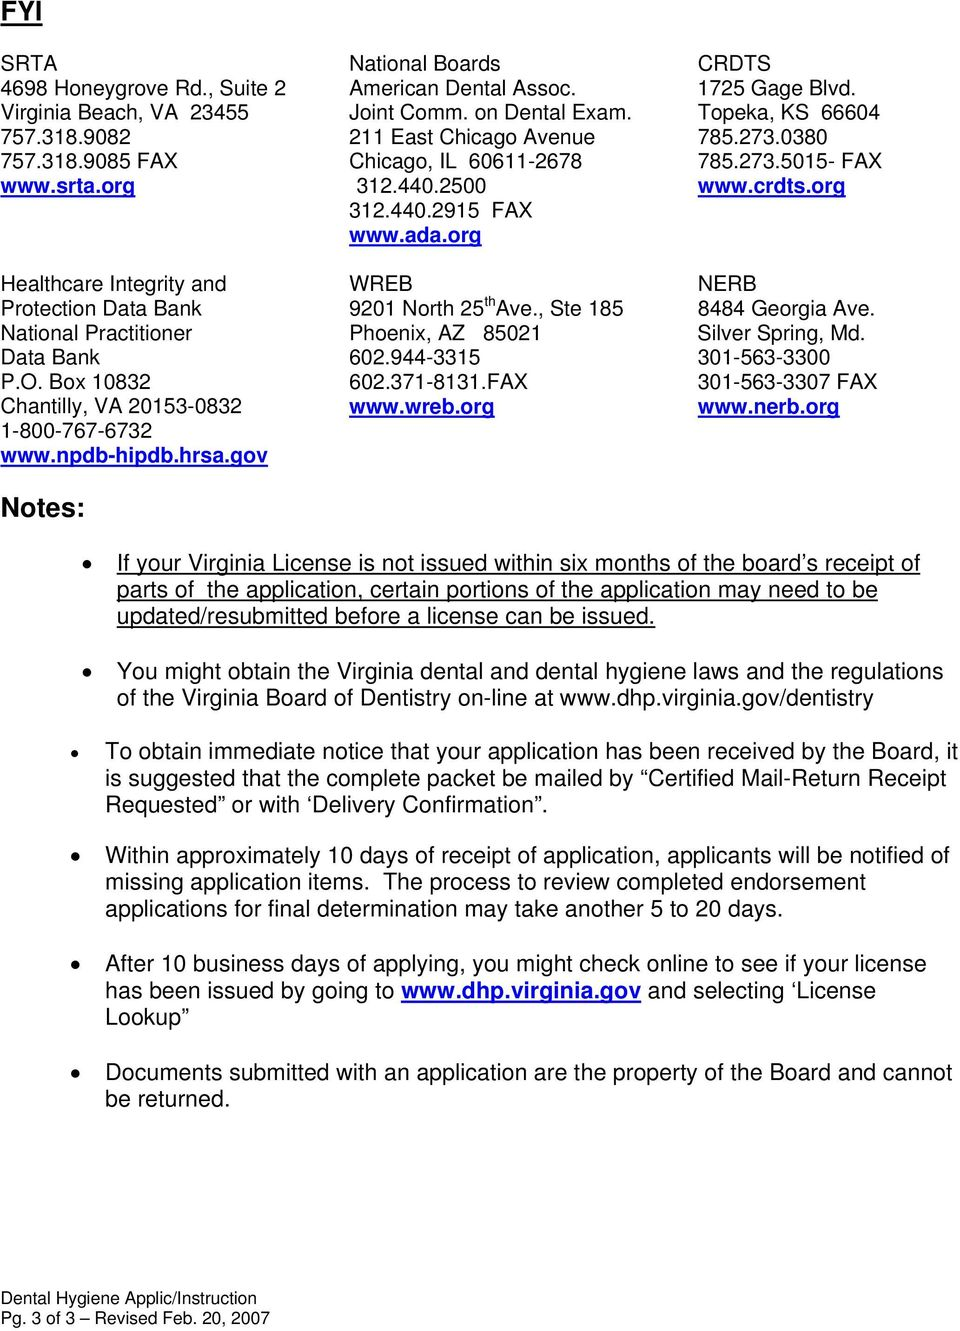 APPLICATION REQUIREMENTS FOR DENTAL HYGIENISTS - PDF